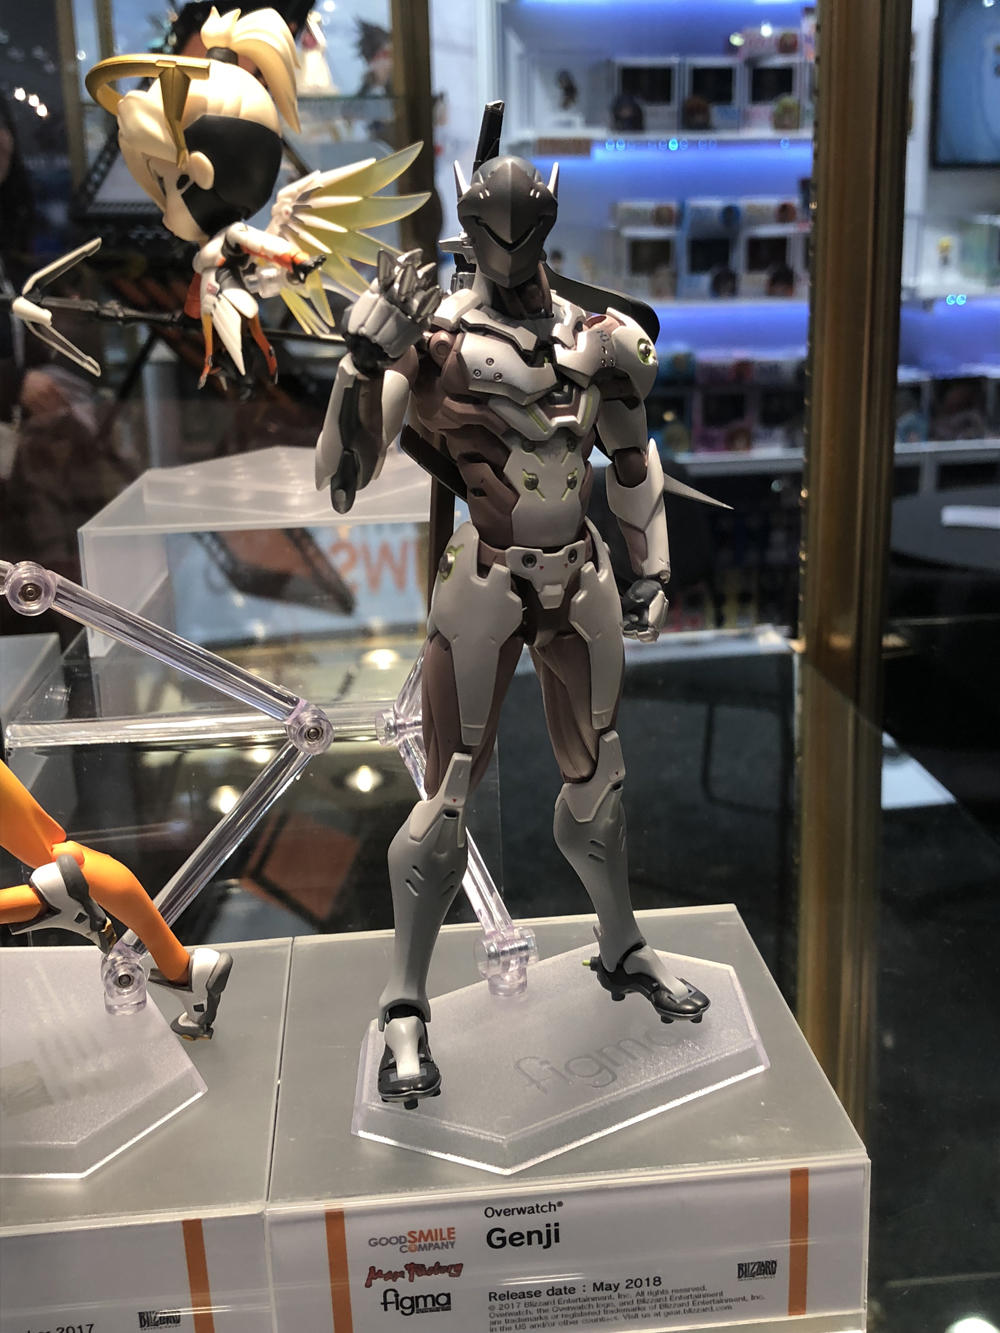 2018 New Toys : New york toy fair good smile awesometoy